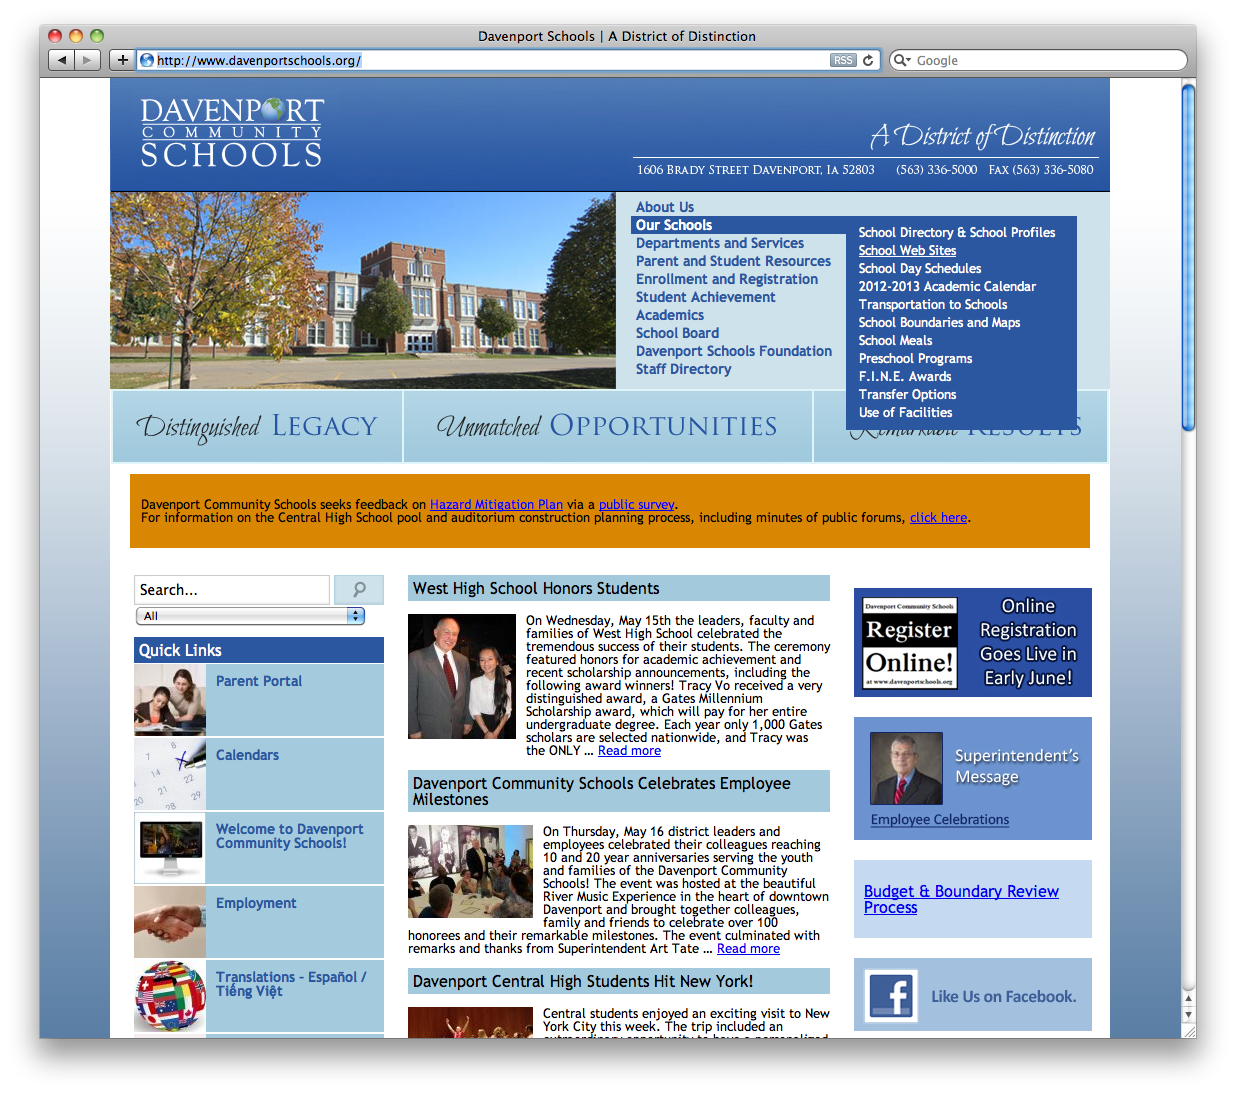 Davenport Schools Homepage with Dropdown